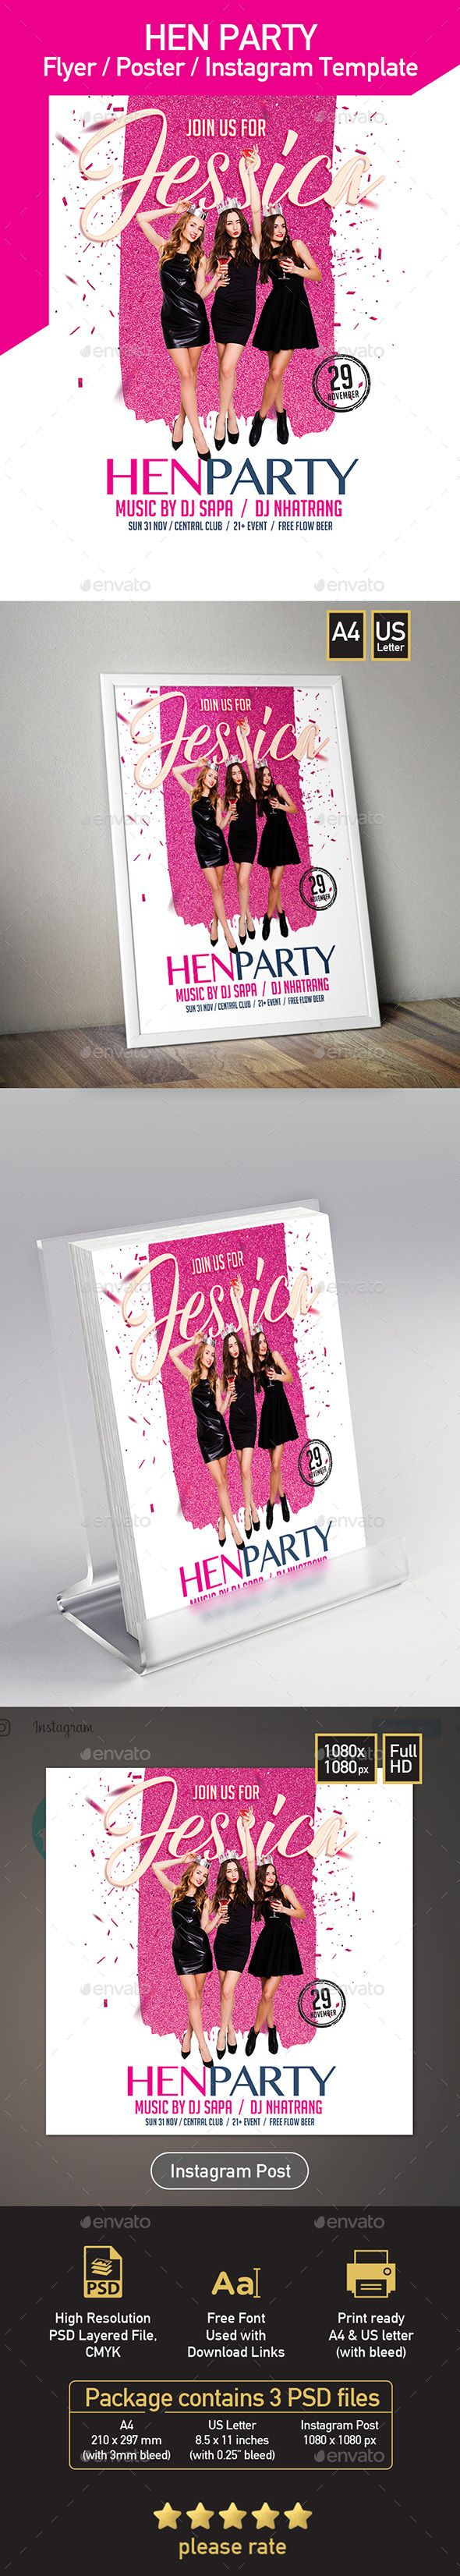 Hen Party Flyer Invitation Poster  Set Of  Templates  Letter